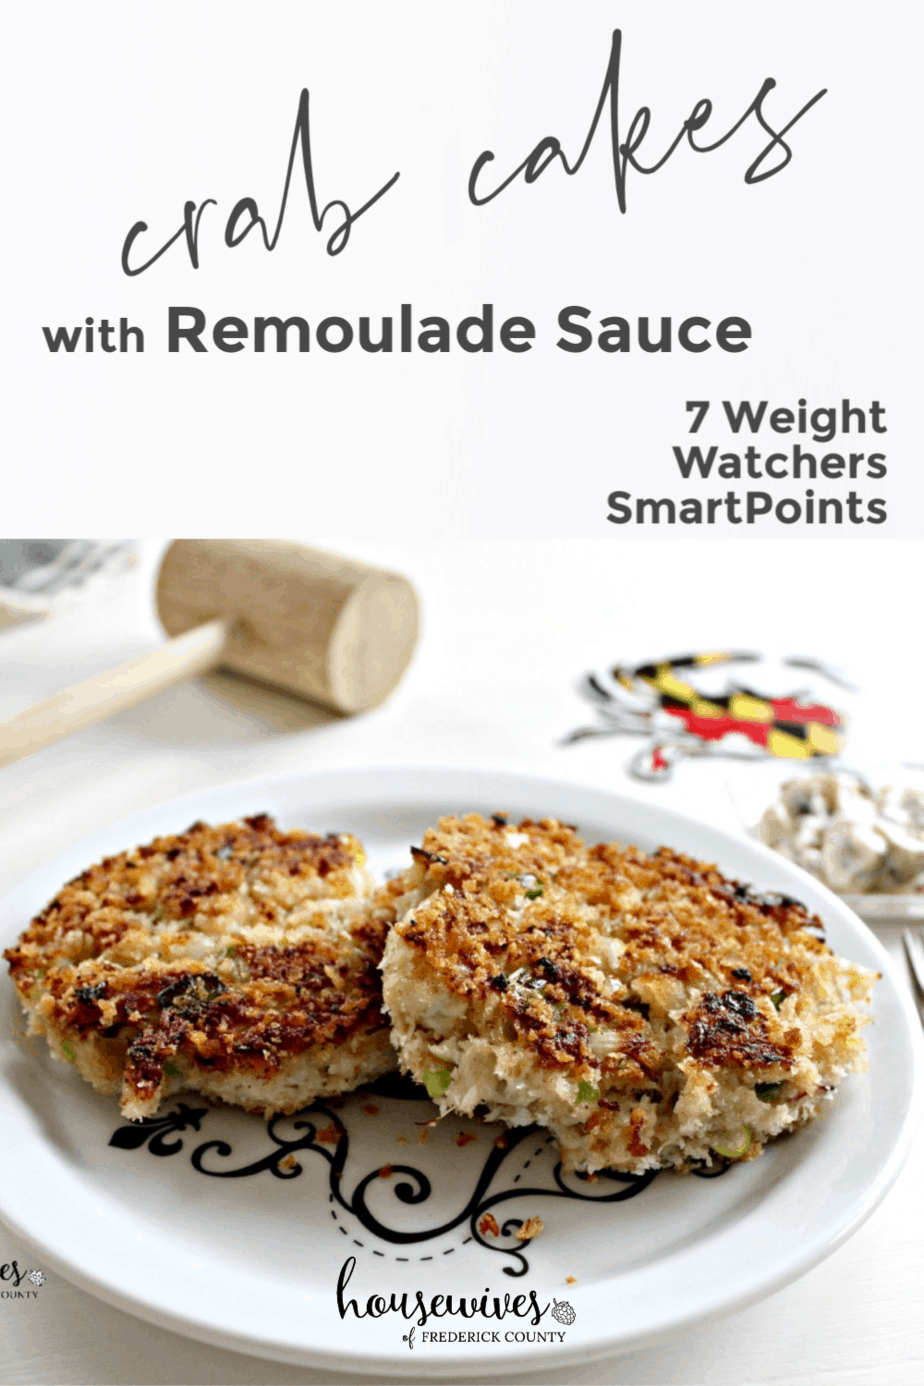 Crab Cakes Recipe with Remoulade Sauce: 7 Weight Watchers SmartPoints